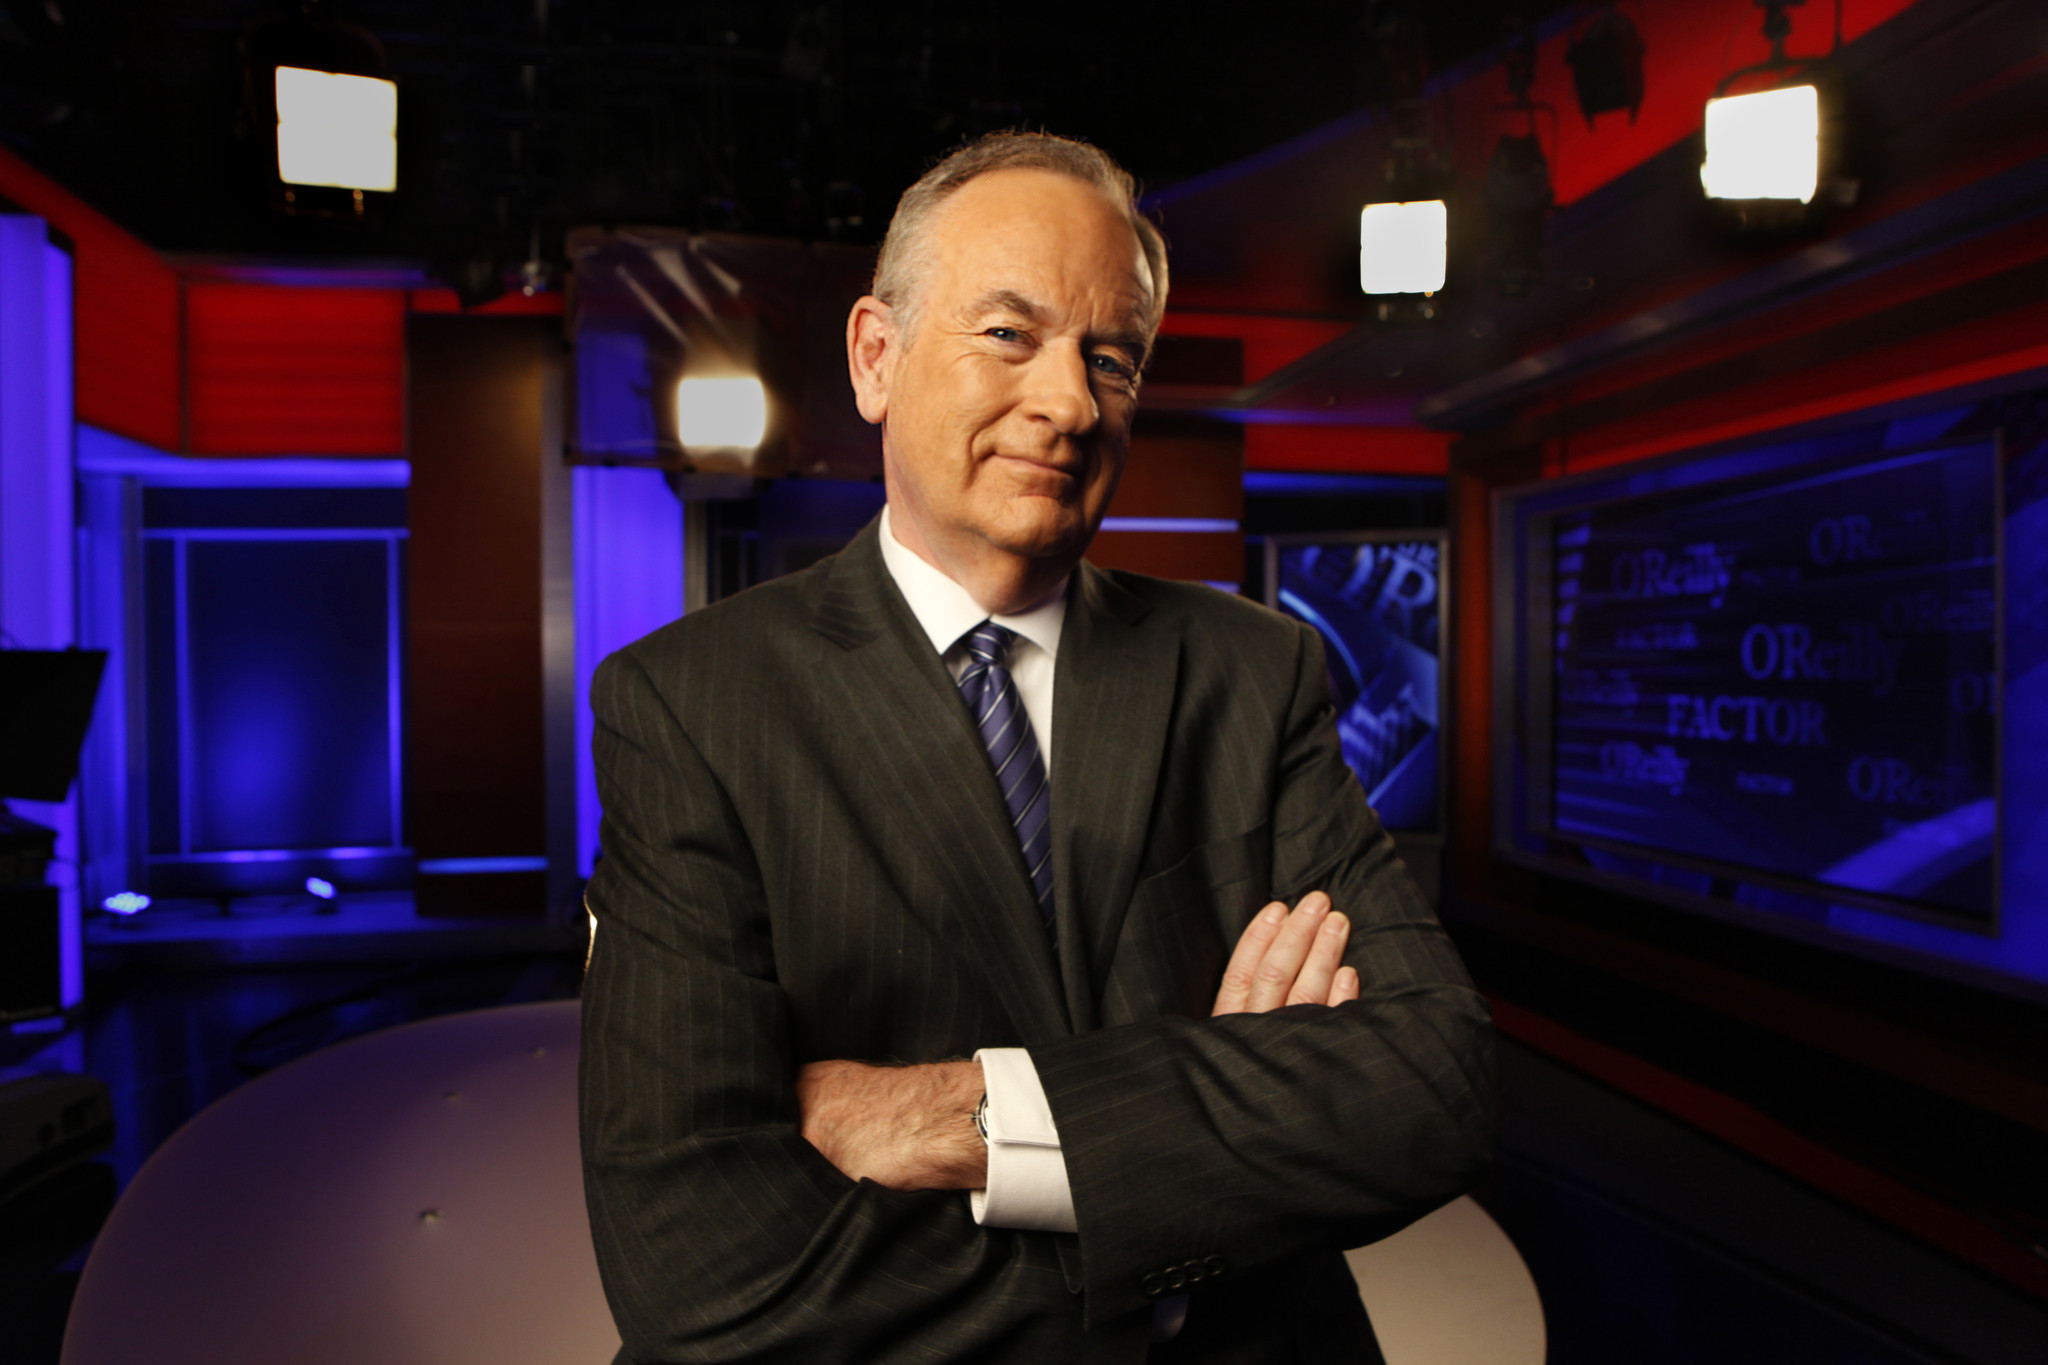 Bill O'Reilly's on Sean Hannity's Fox News Show